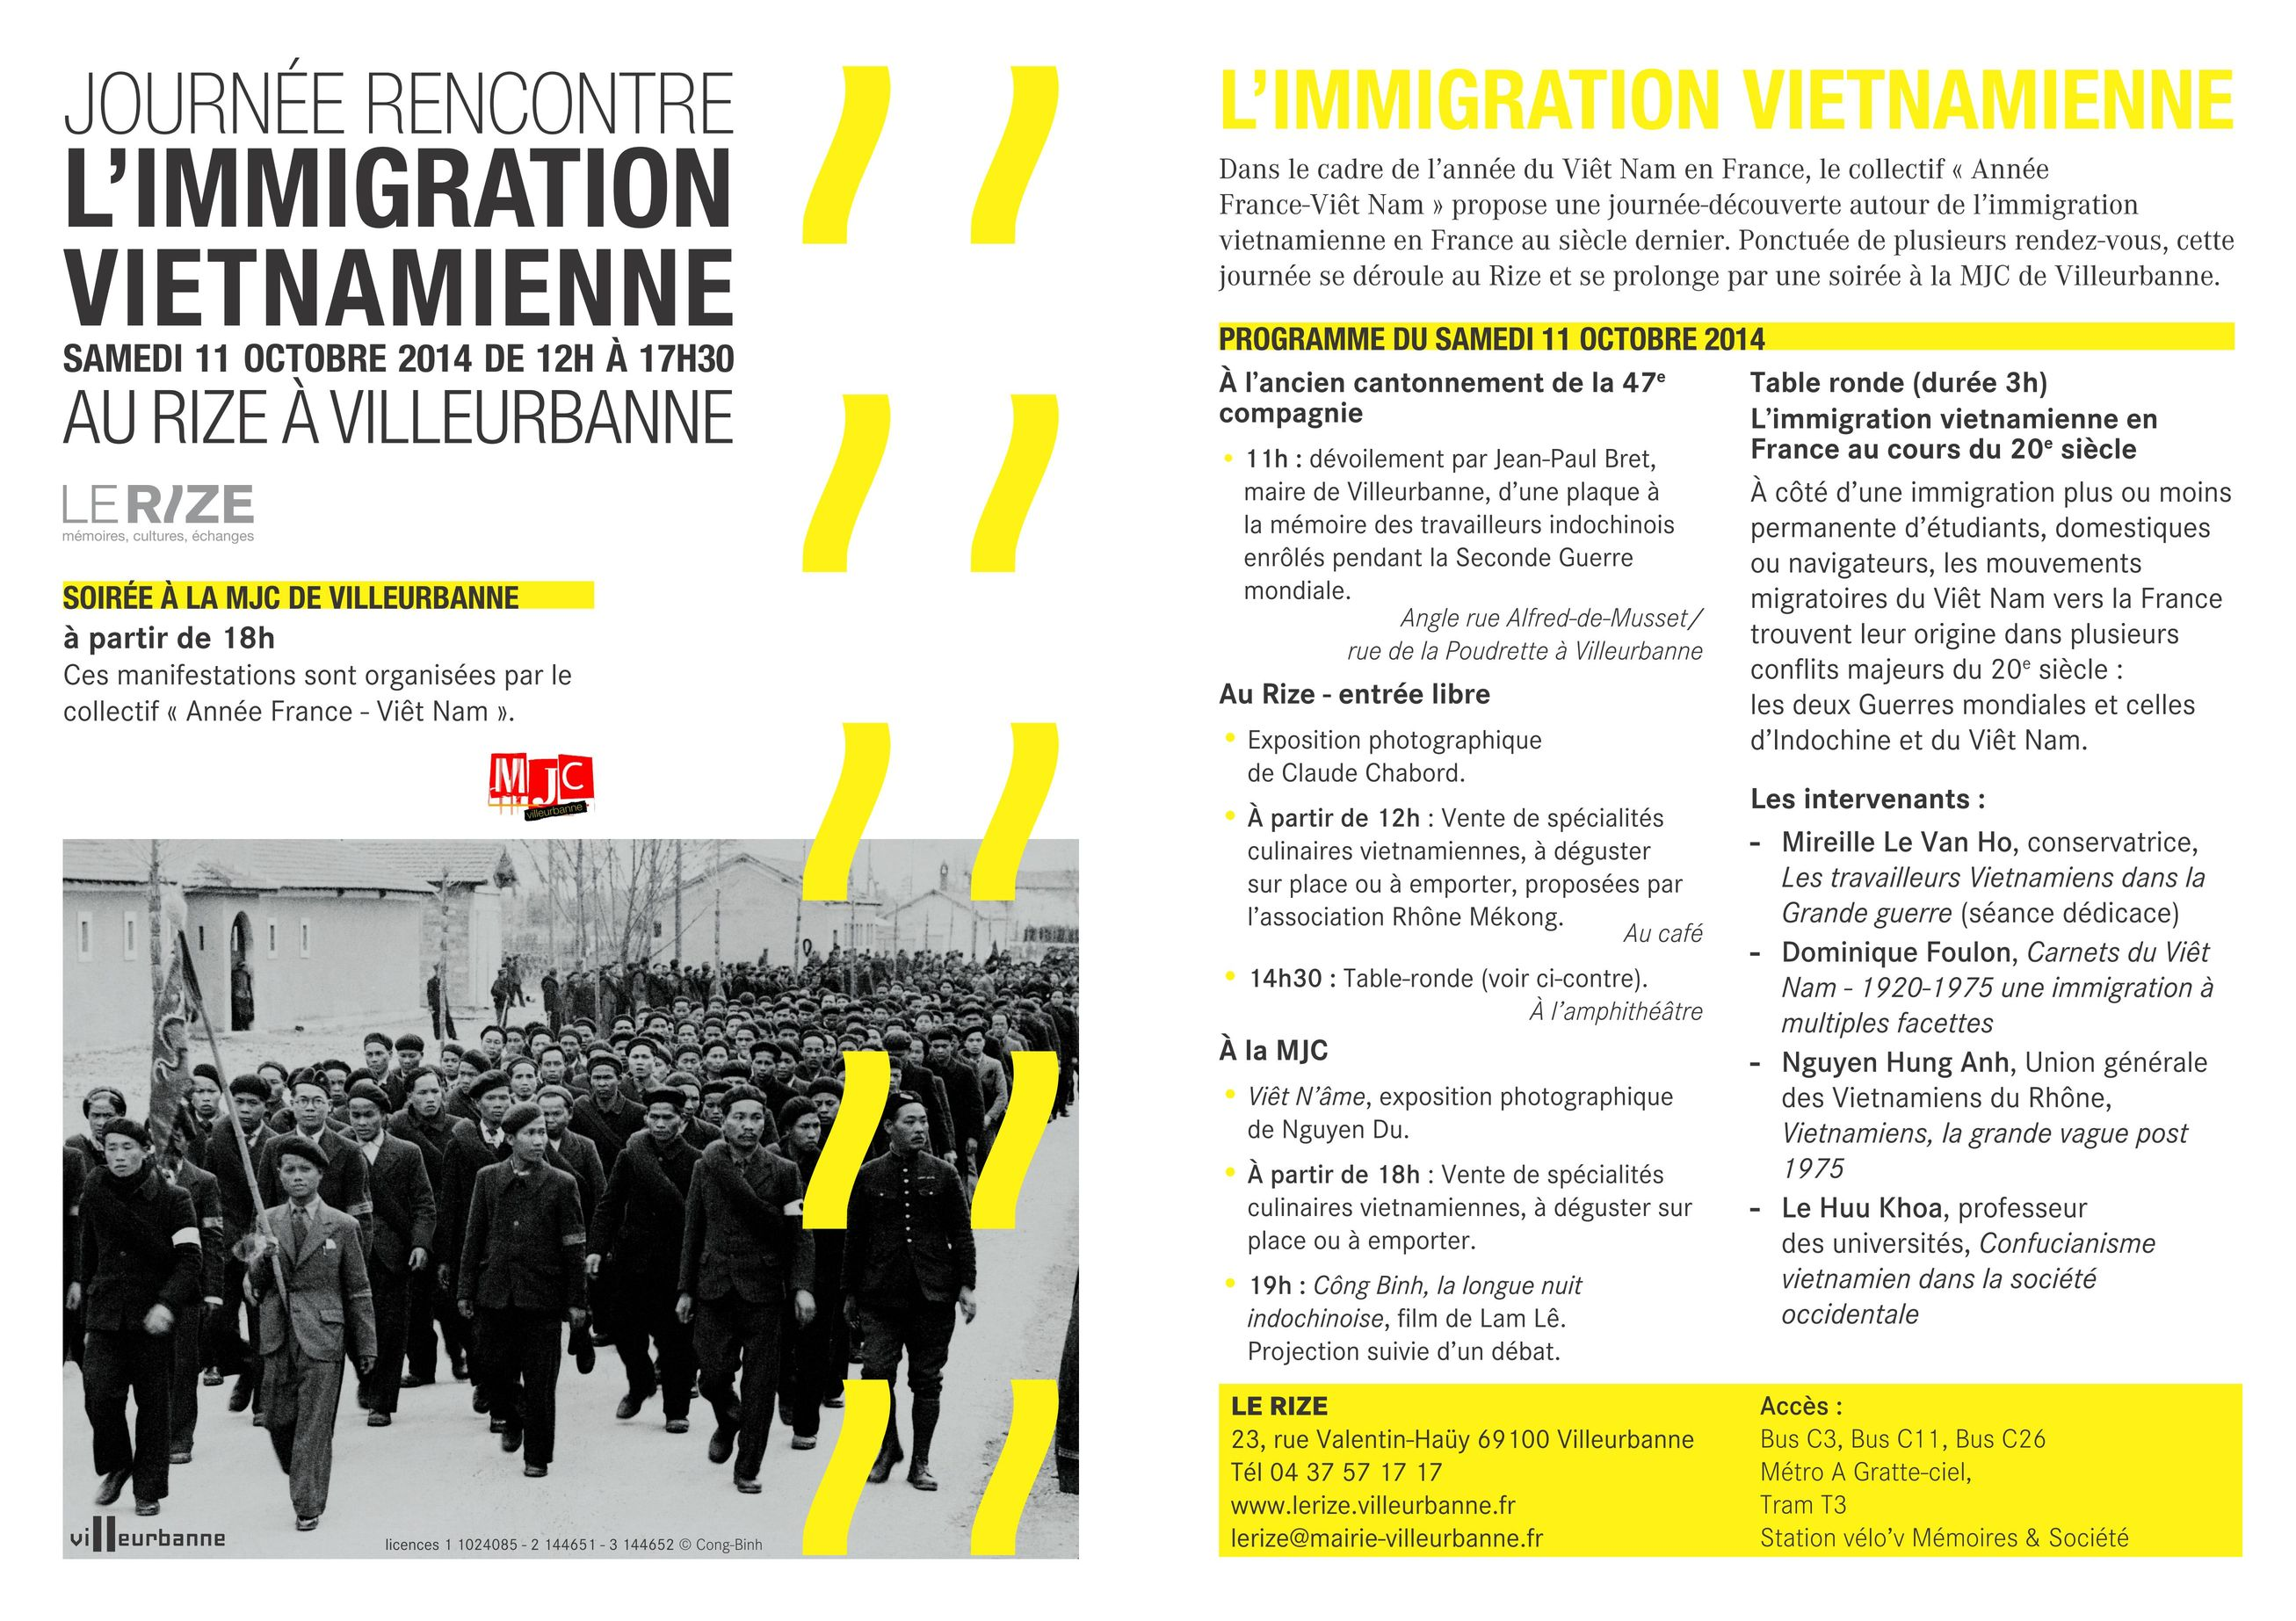 ImmigrationVietnamienne_Rize_2014